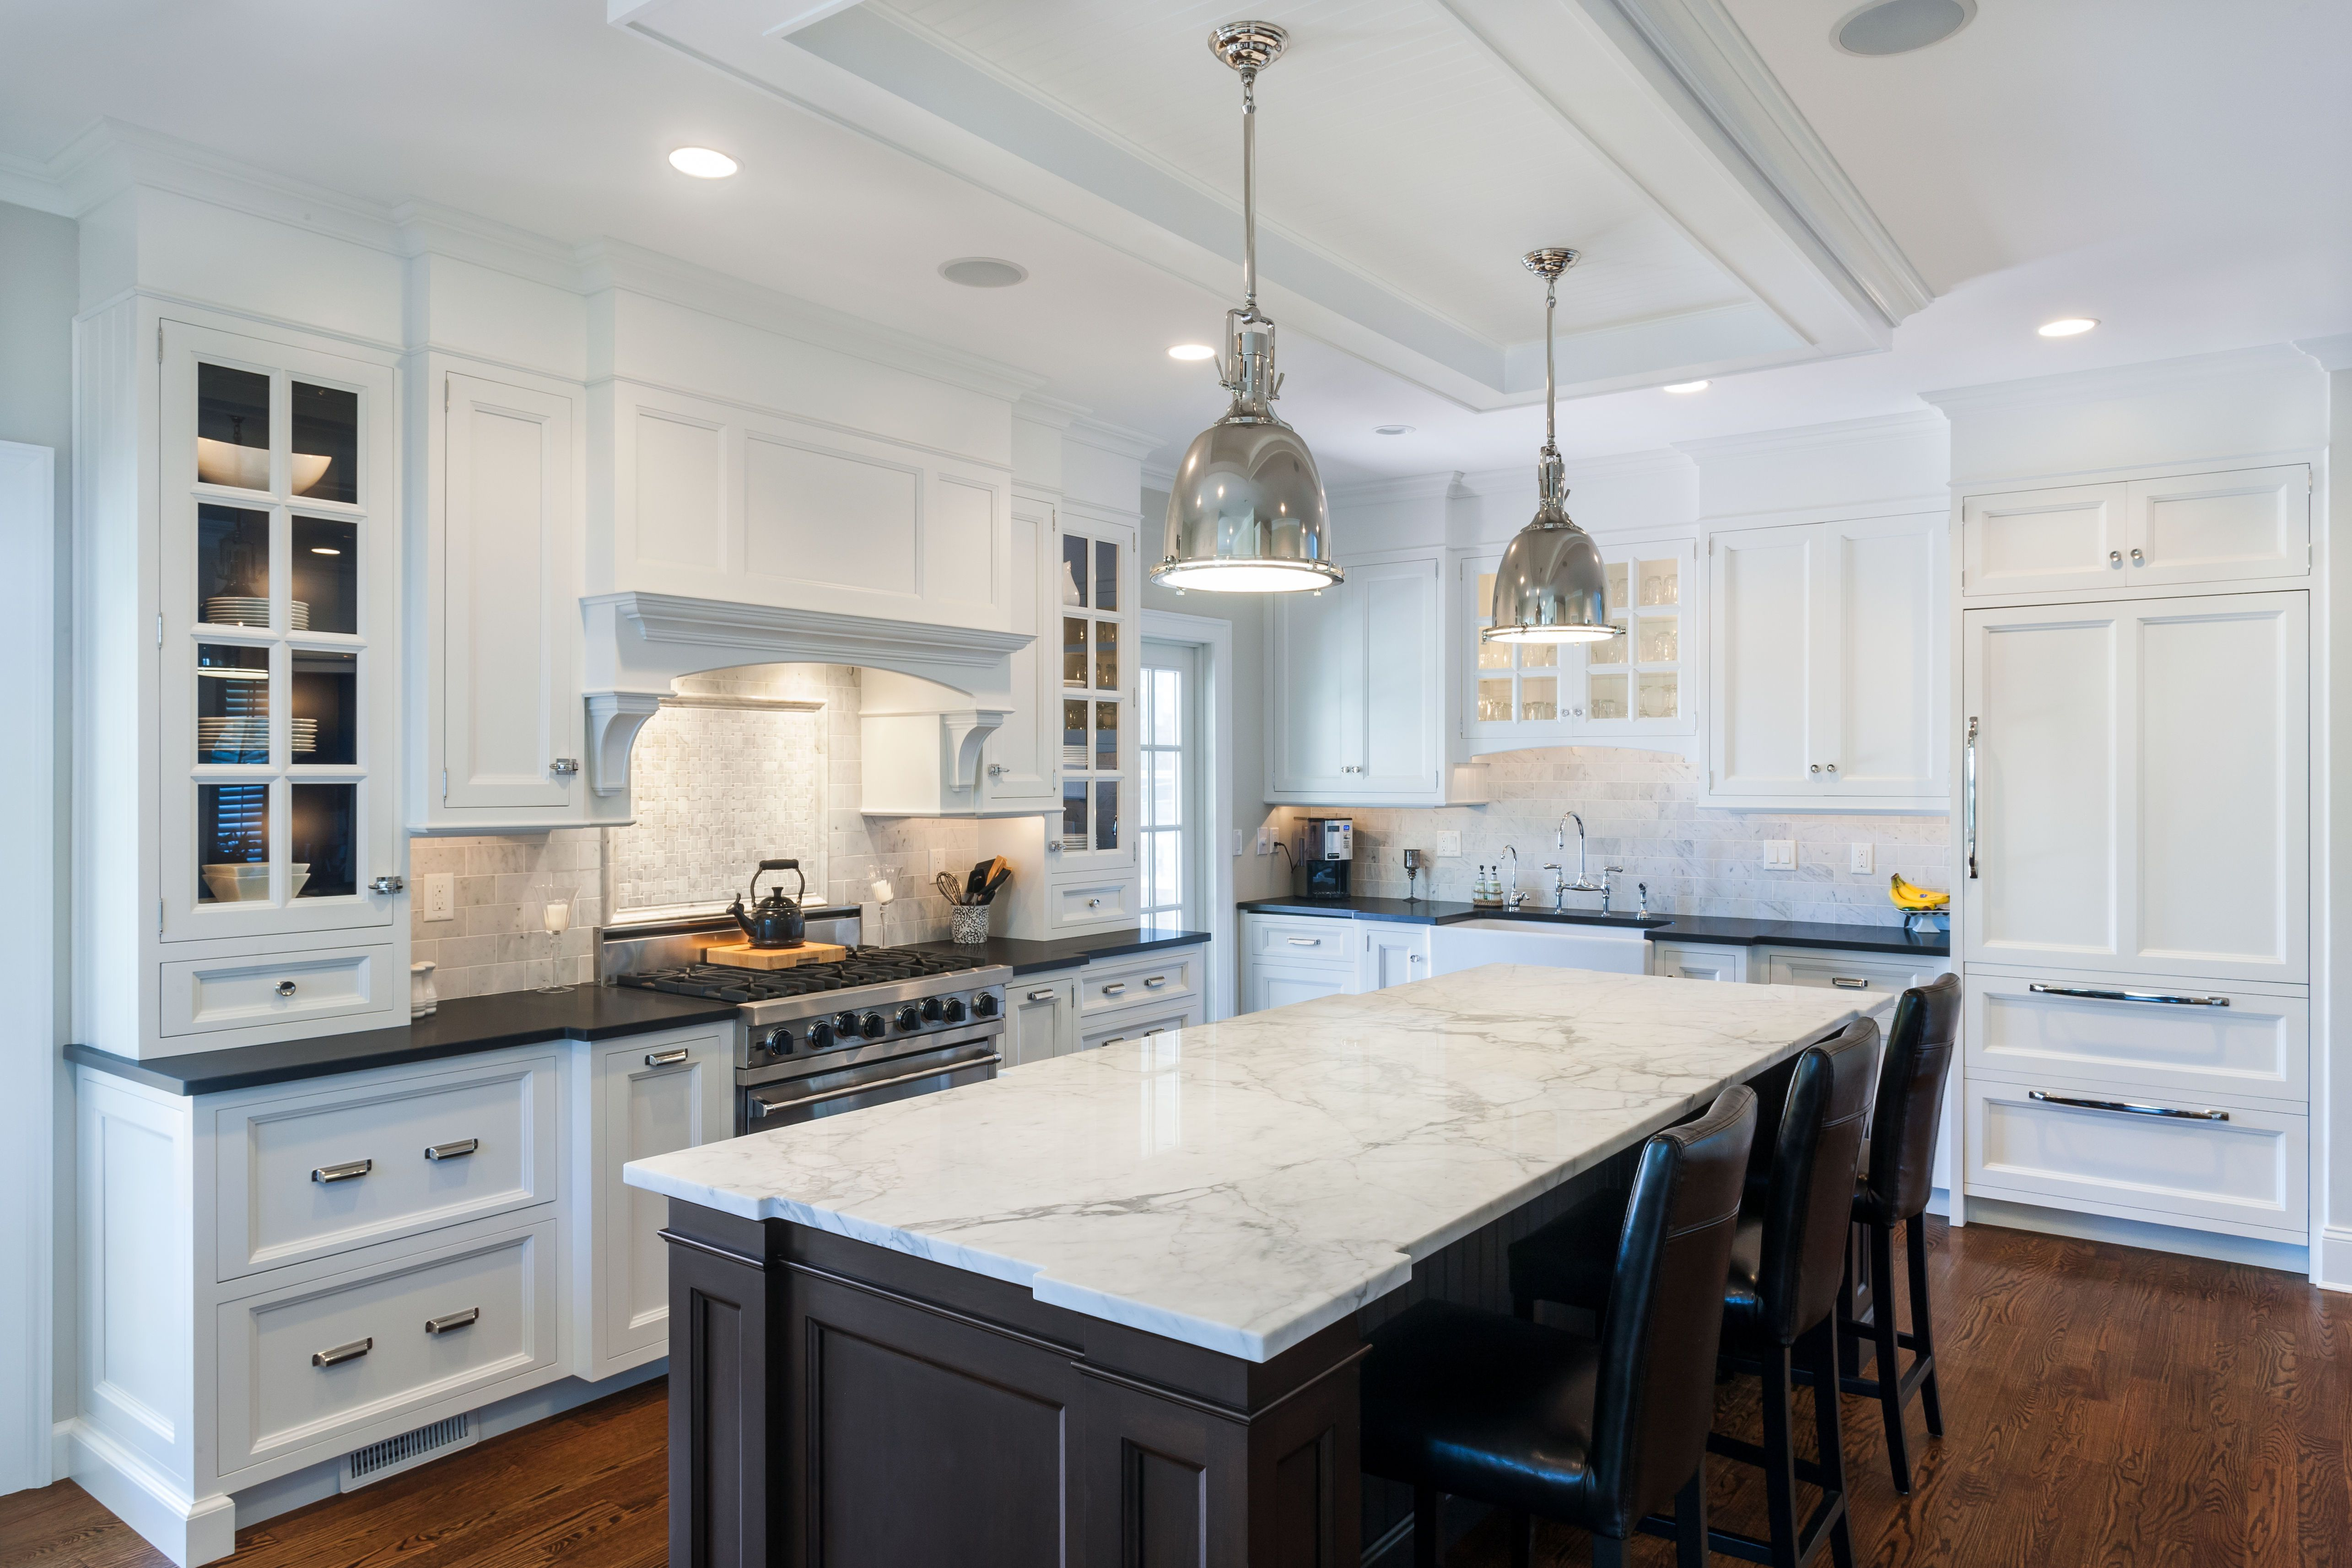 Design Kitchen Countertop Ideas Black Kitchen Island White Marble